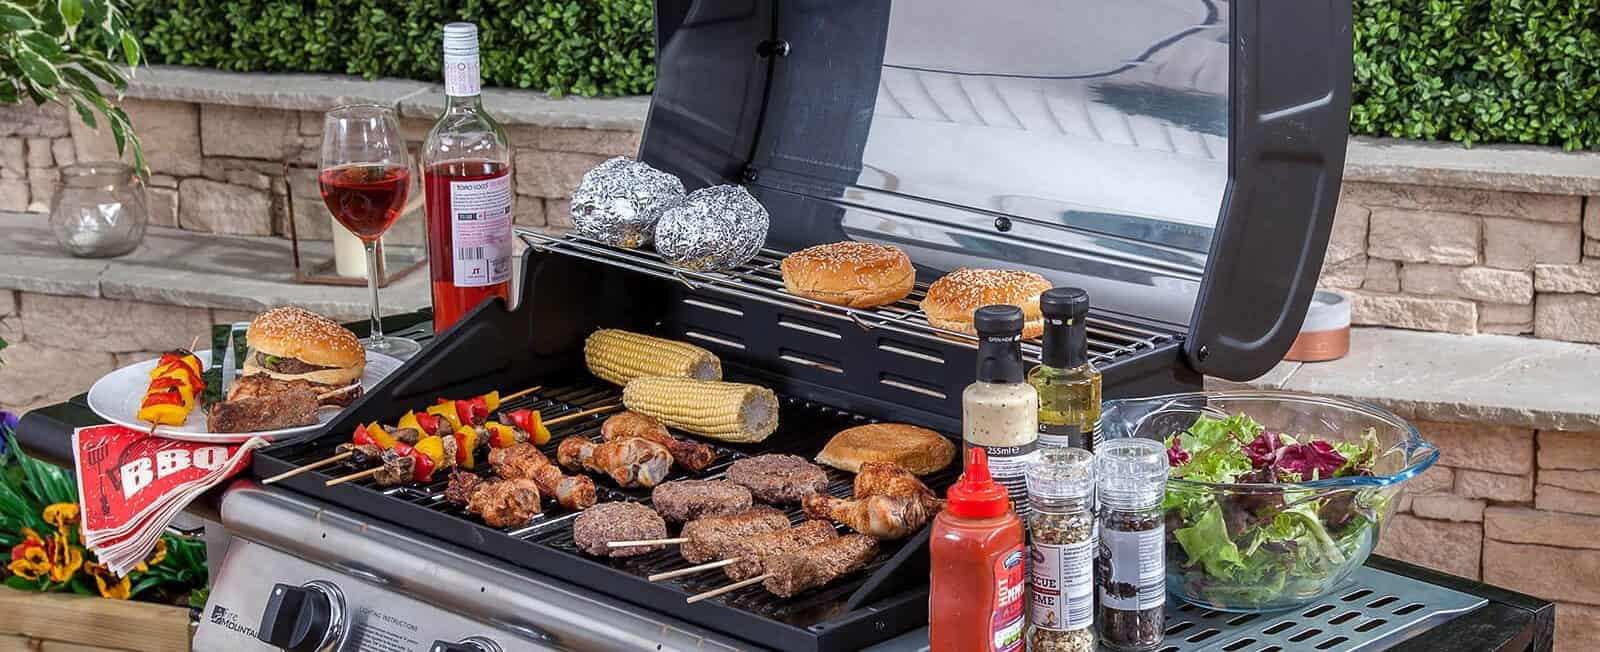 wedding catering barbeque burgers